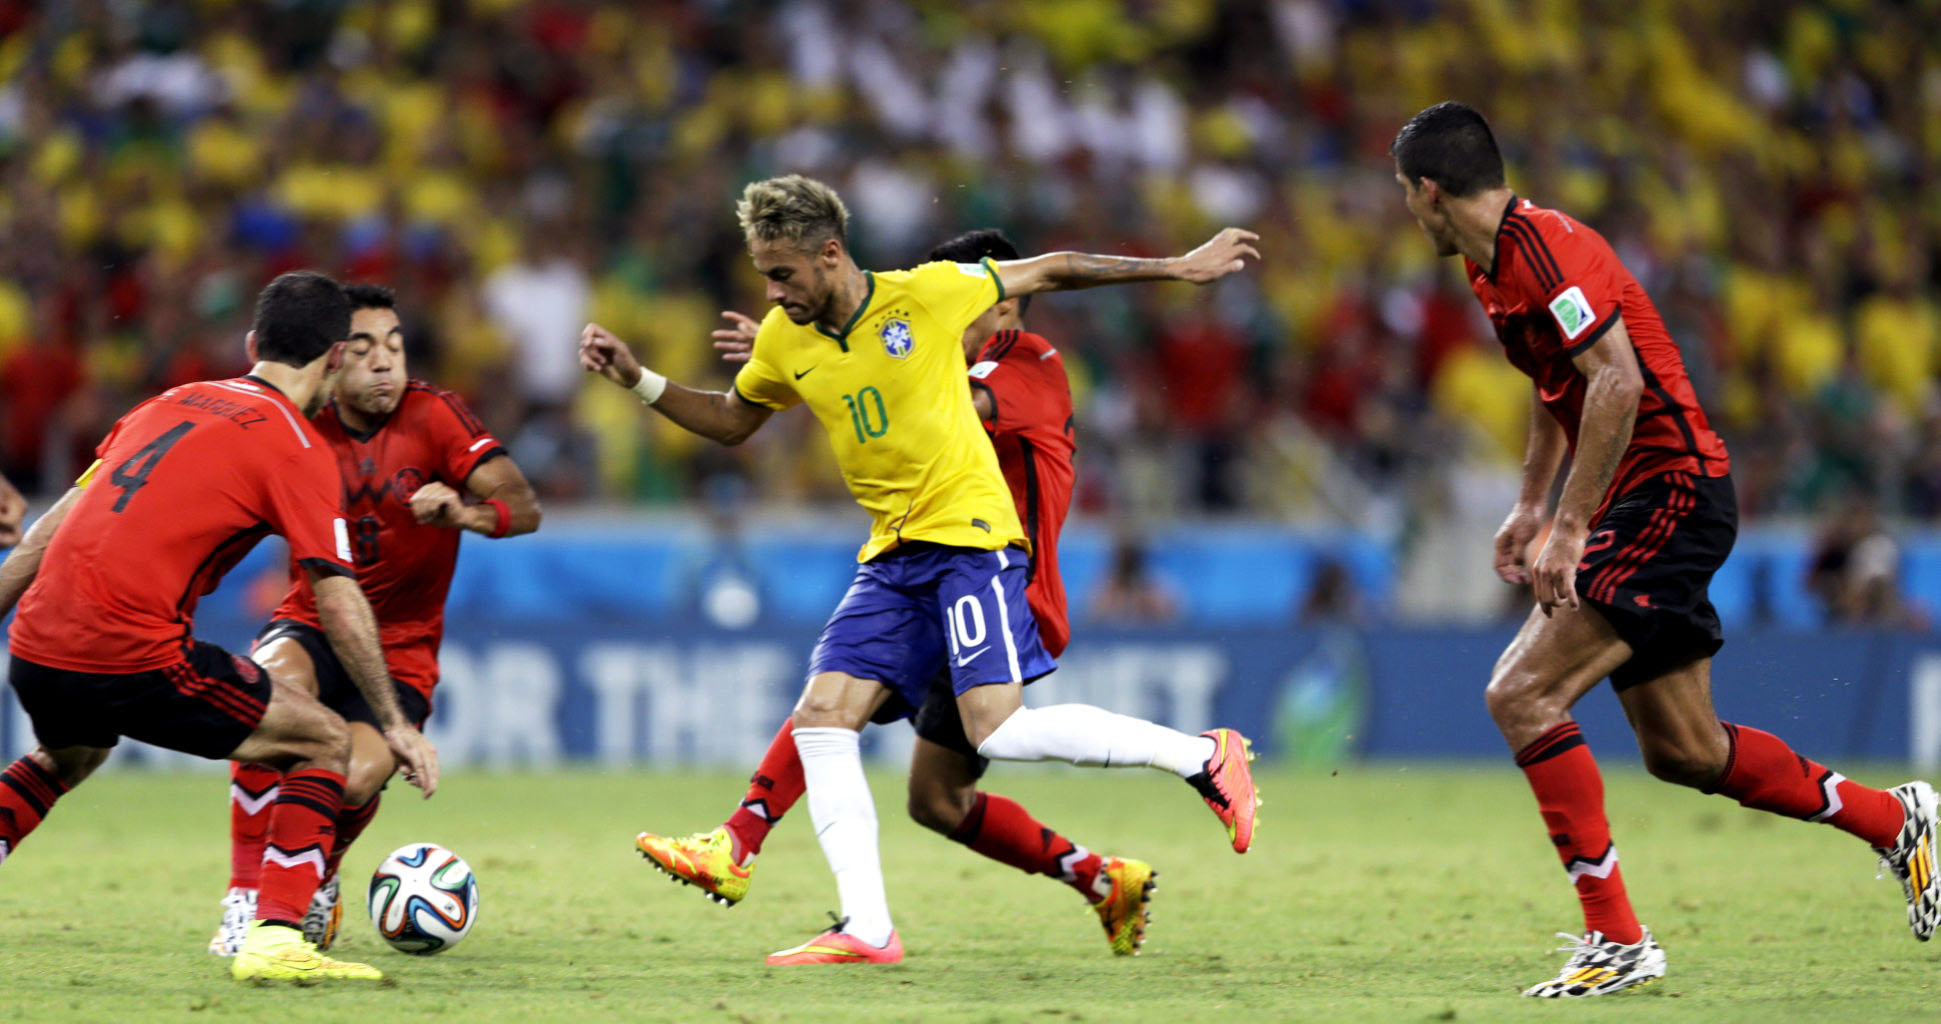 Neymar against Mexico in the FIFA World Cup 2014